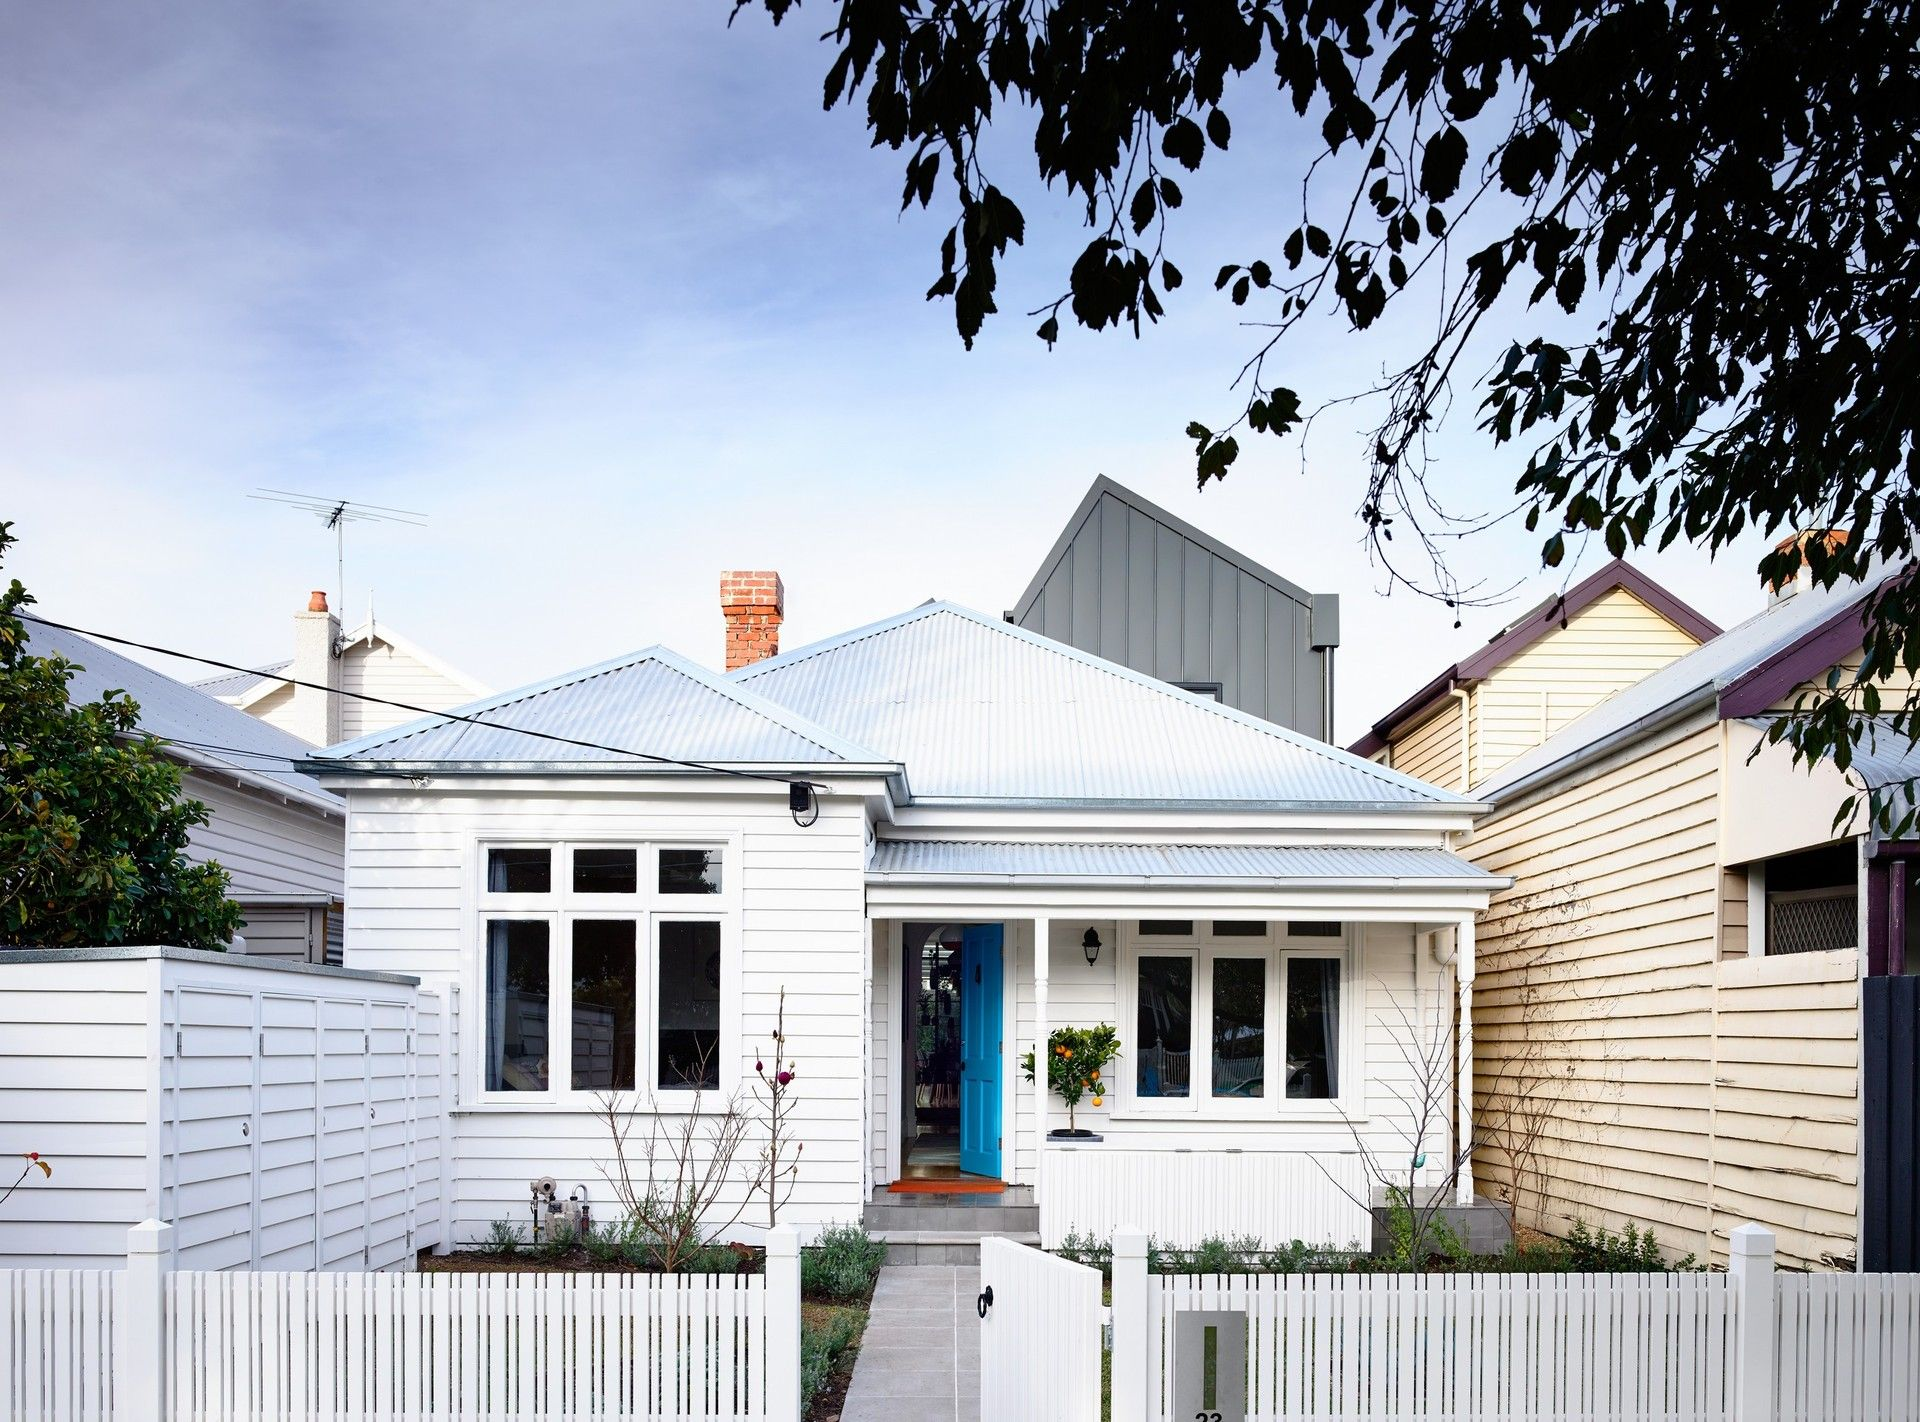 Victorian house colorful interiors for a classy exterior south yarra - Traditional Street Facade Of The Sandringham Residence With The New Addition In The Backdrop Trendy Rear Extension Revitalizes Classy Double Fronted